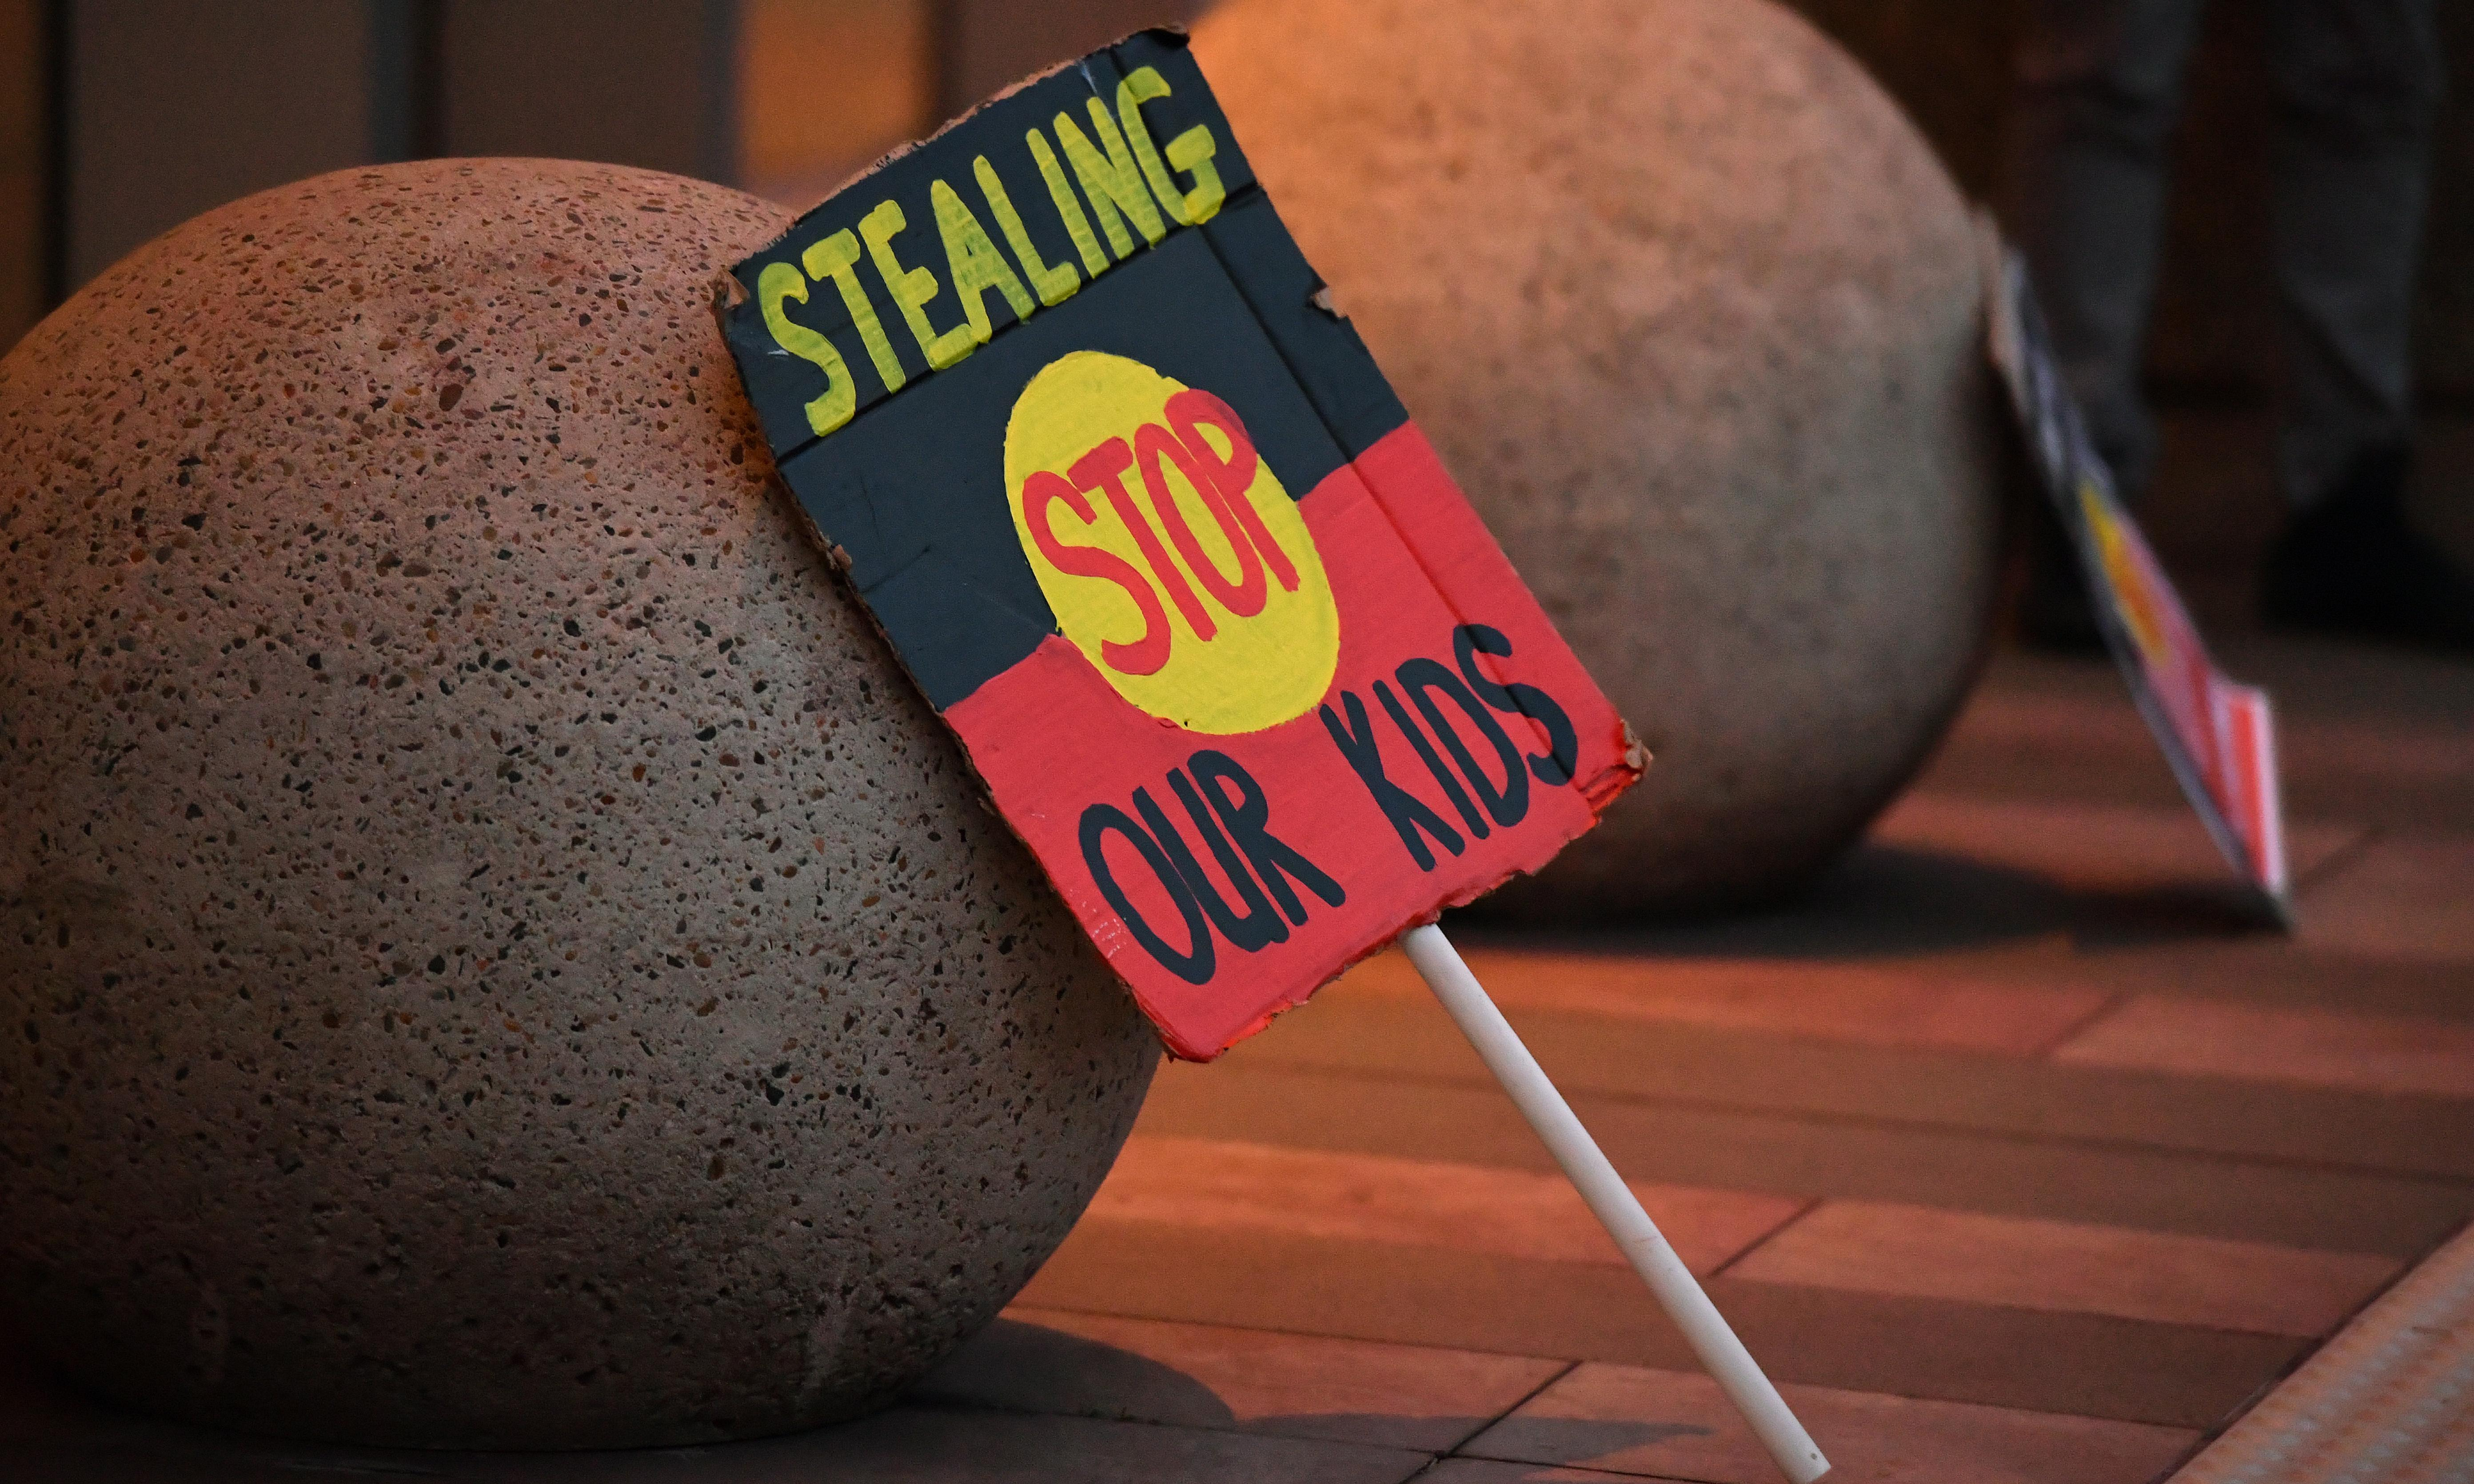 Aboriginal groups beg NSW to back down on adoption changes